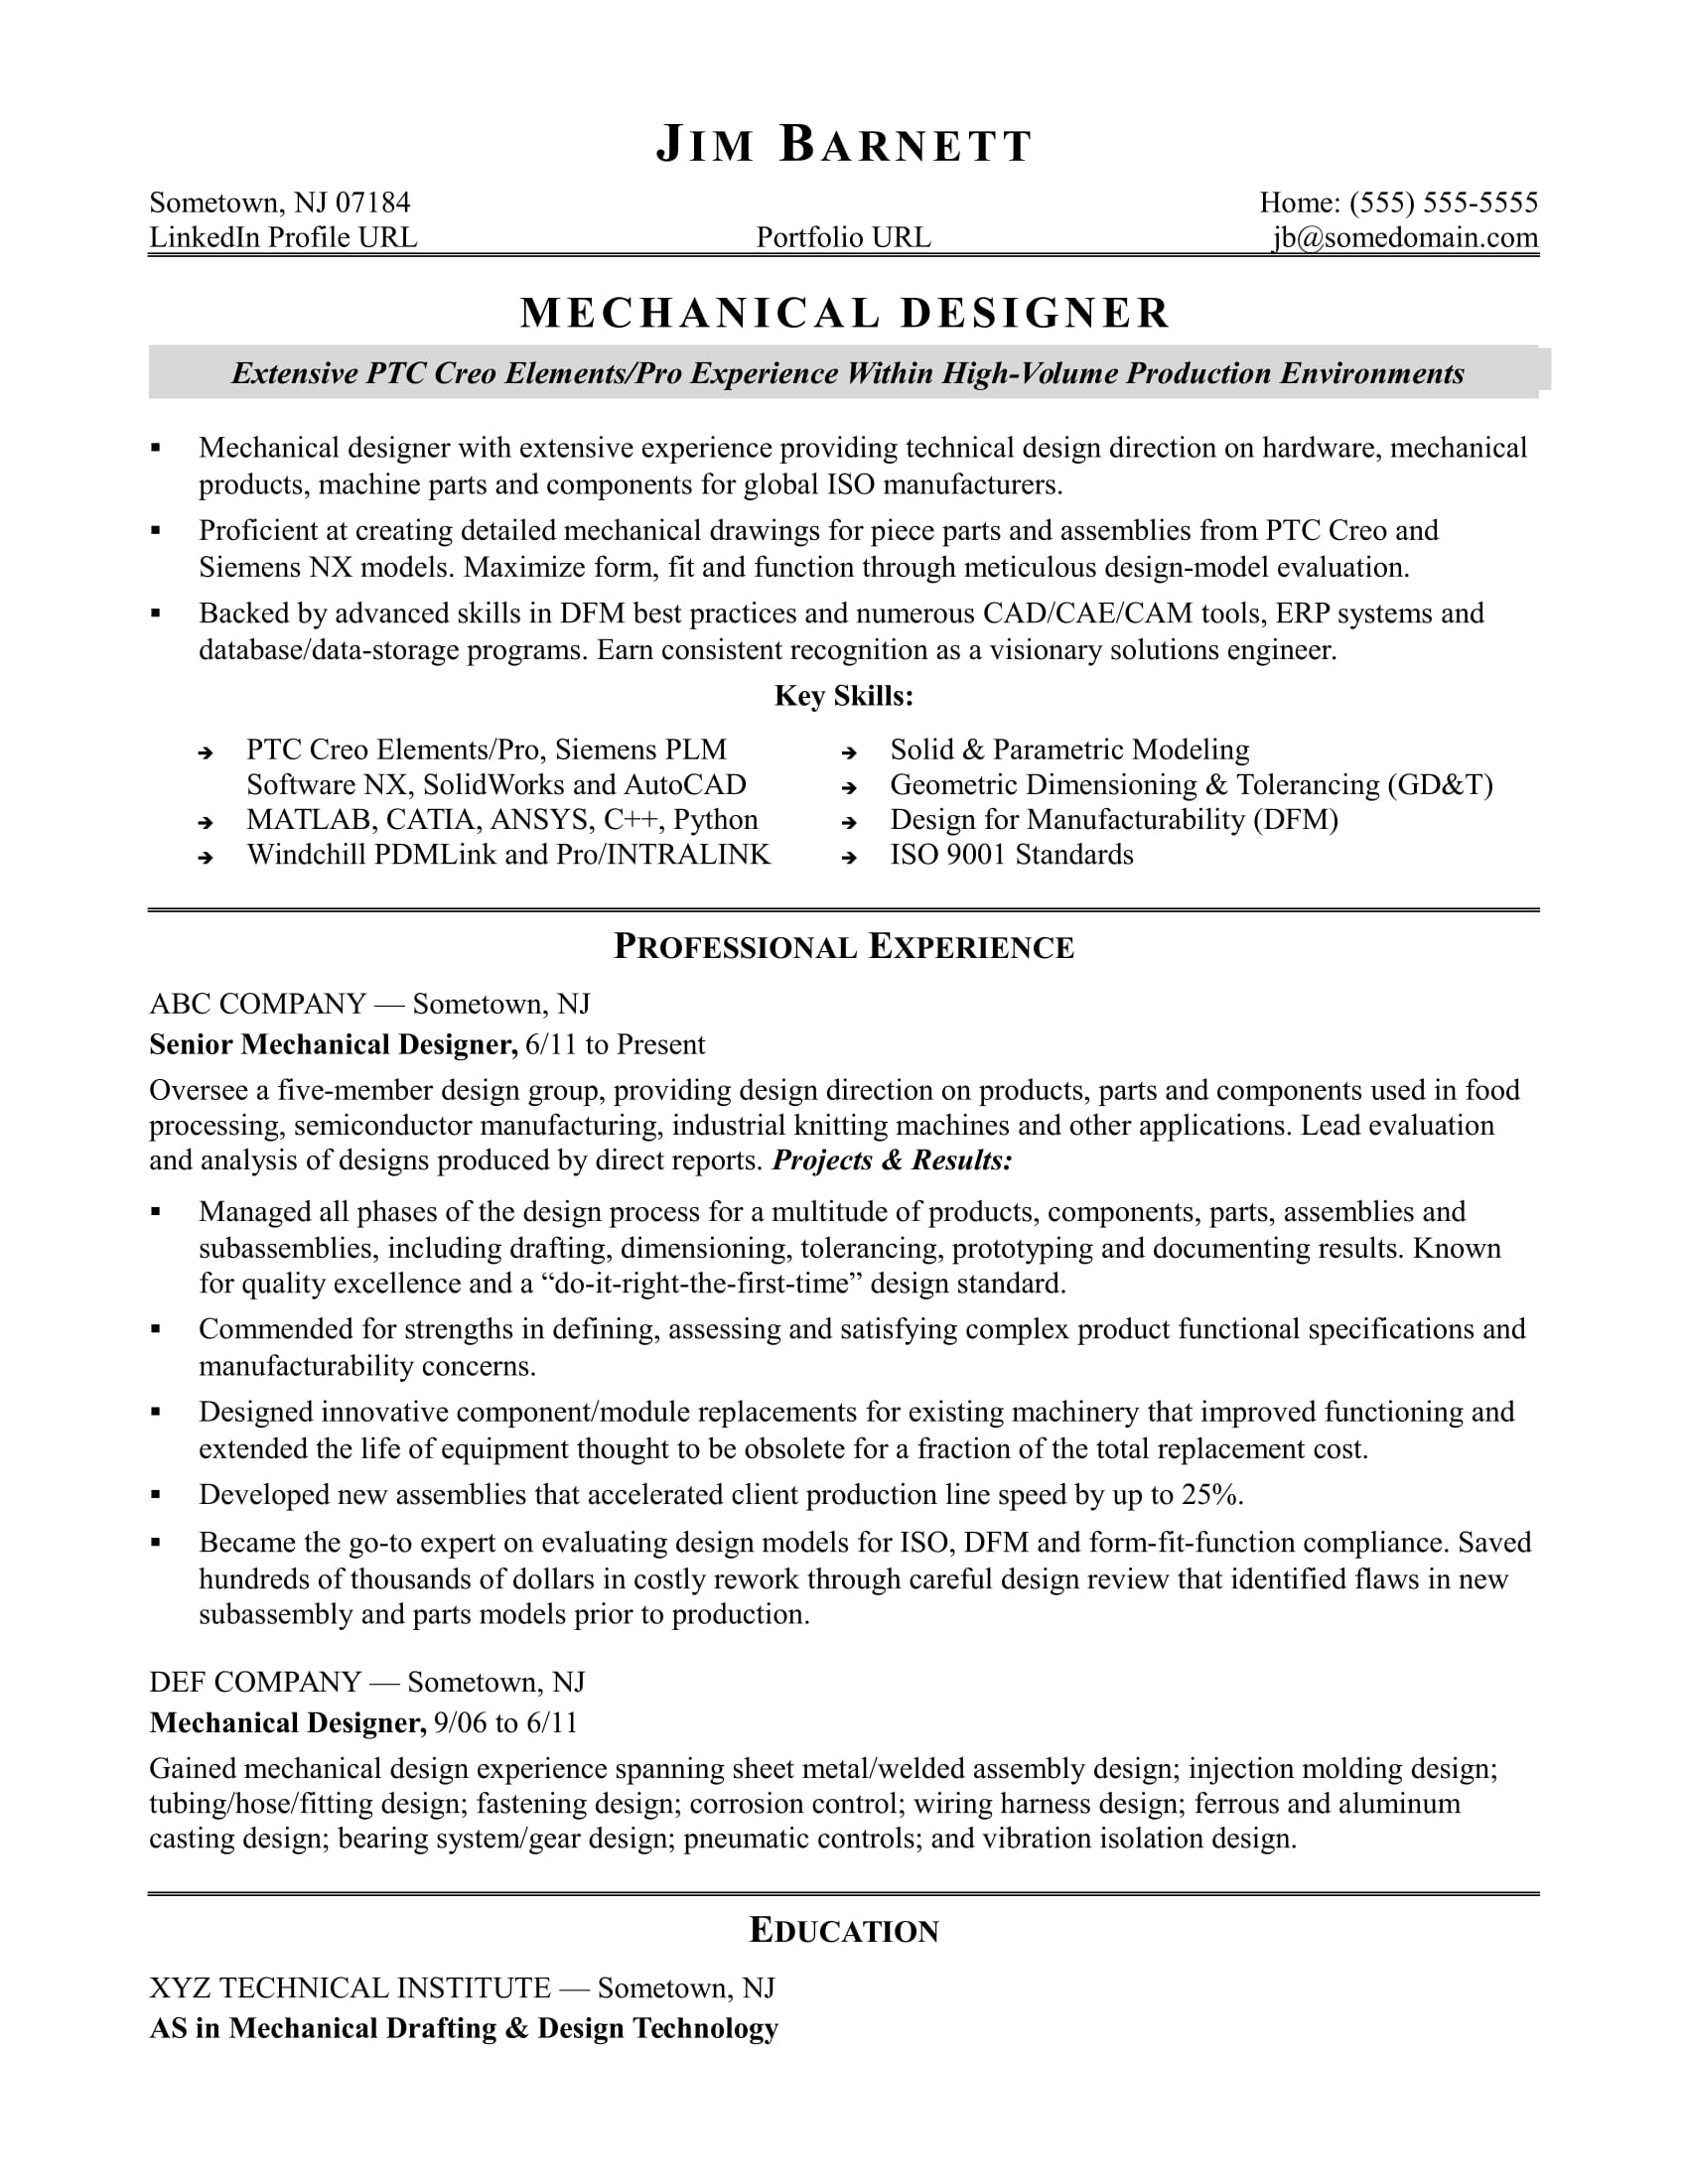 sample resume for an experienced mechanical designer - Design Engineer Resume